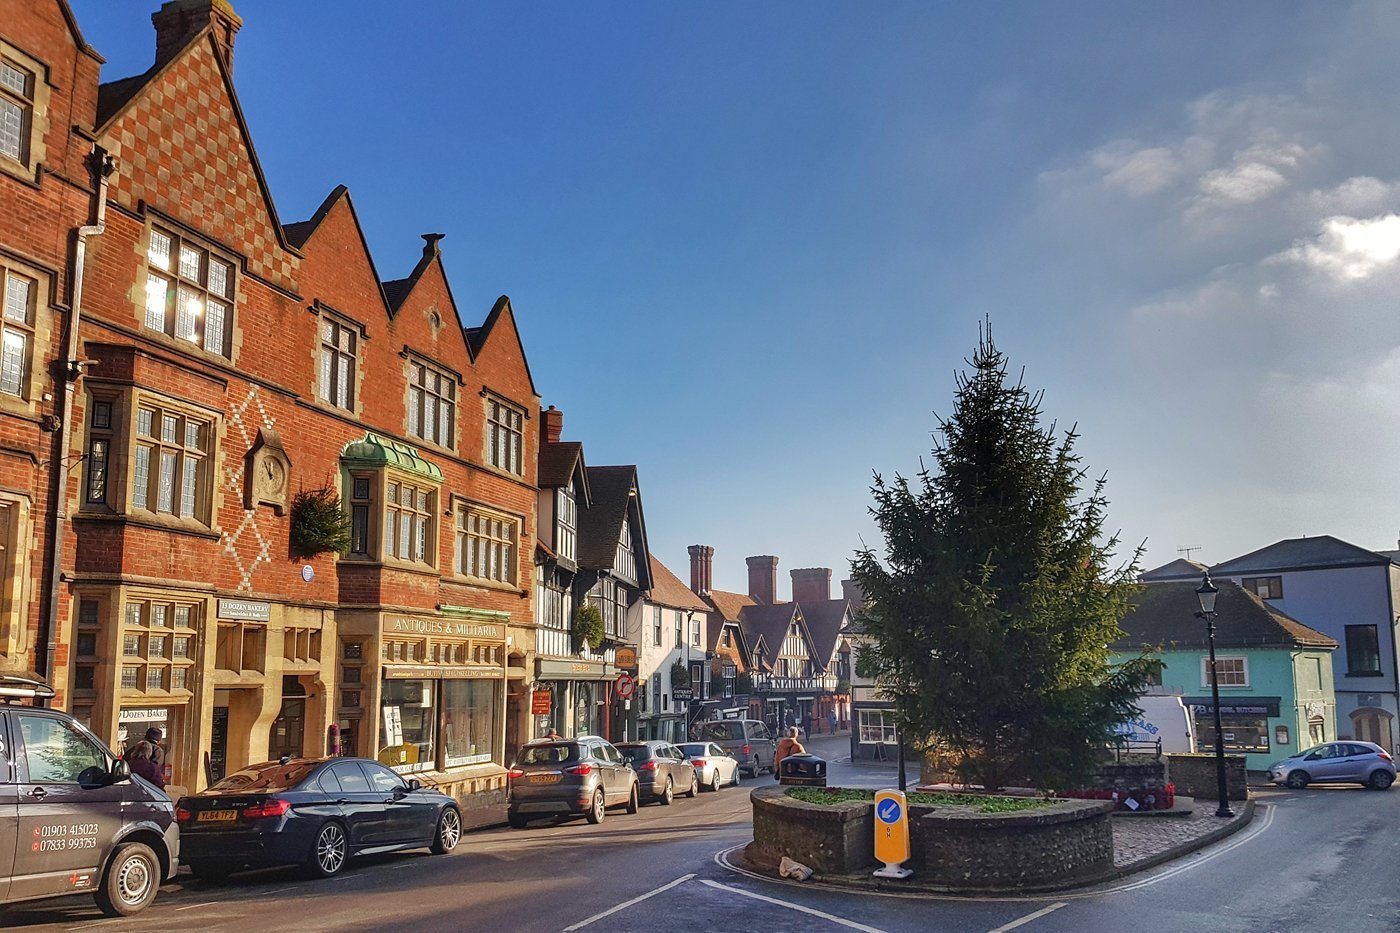 Arundel Square at Christmas